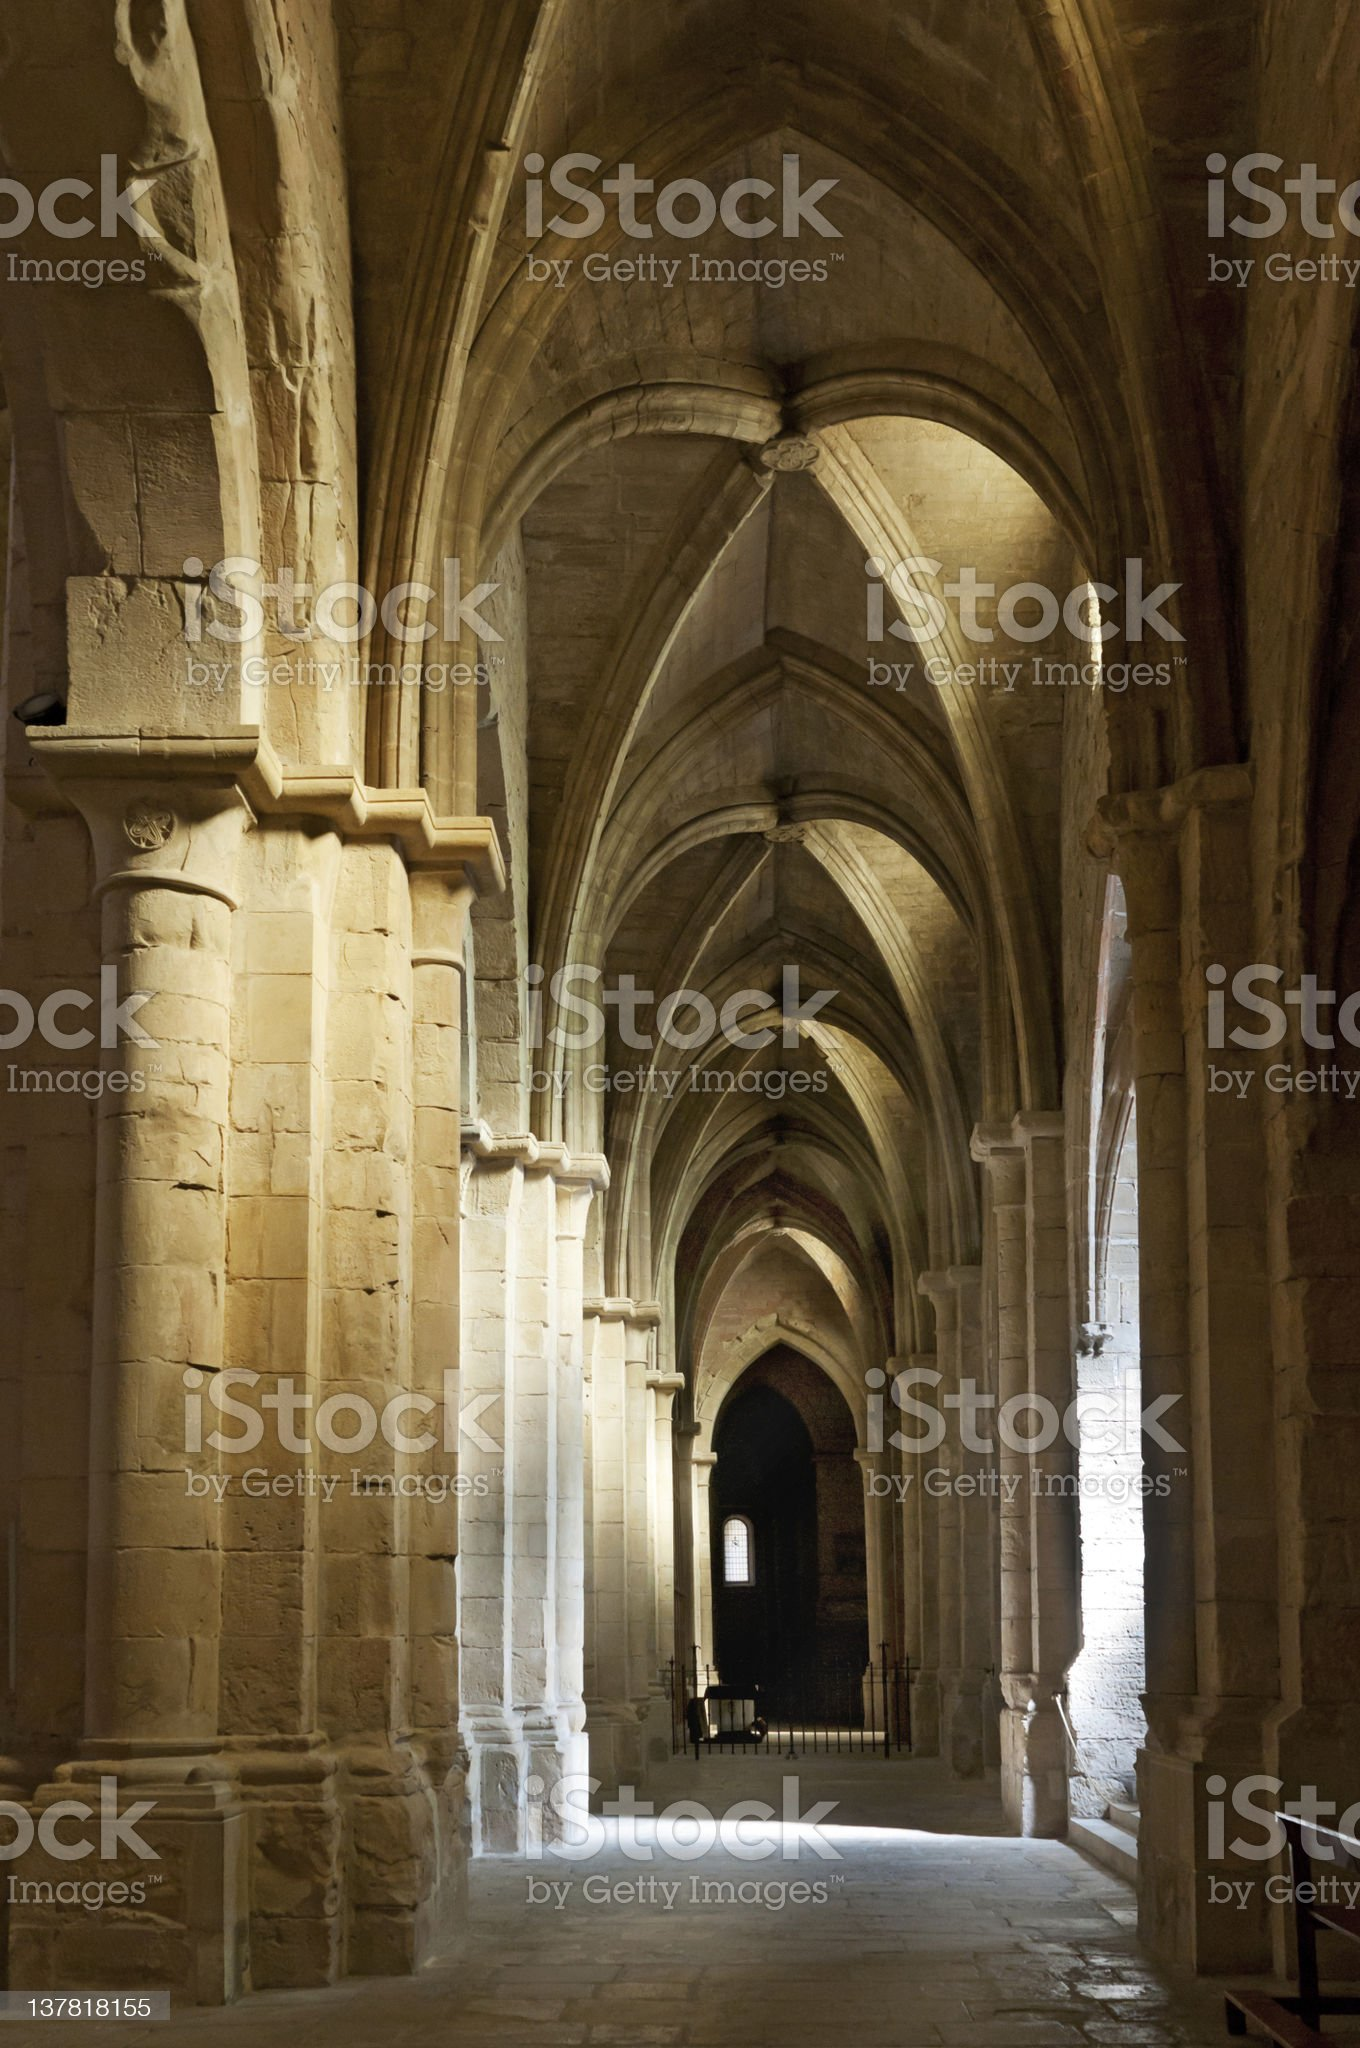 Ceiling and columns, Monastery of Santa Maria de Poblet, Spain royalty-free stock photo